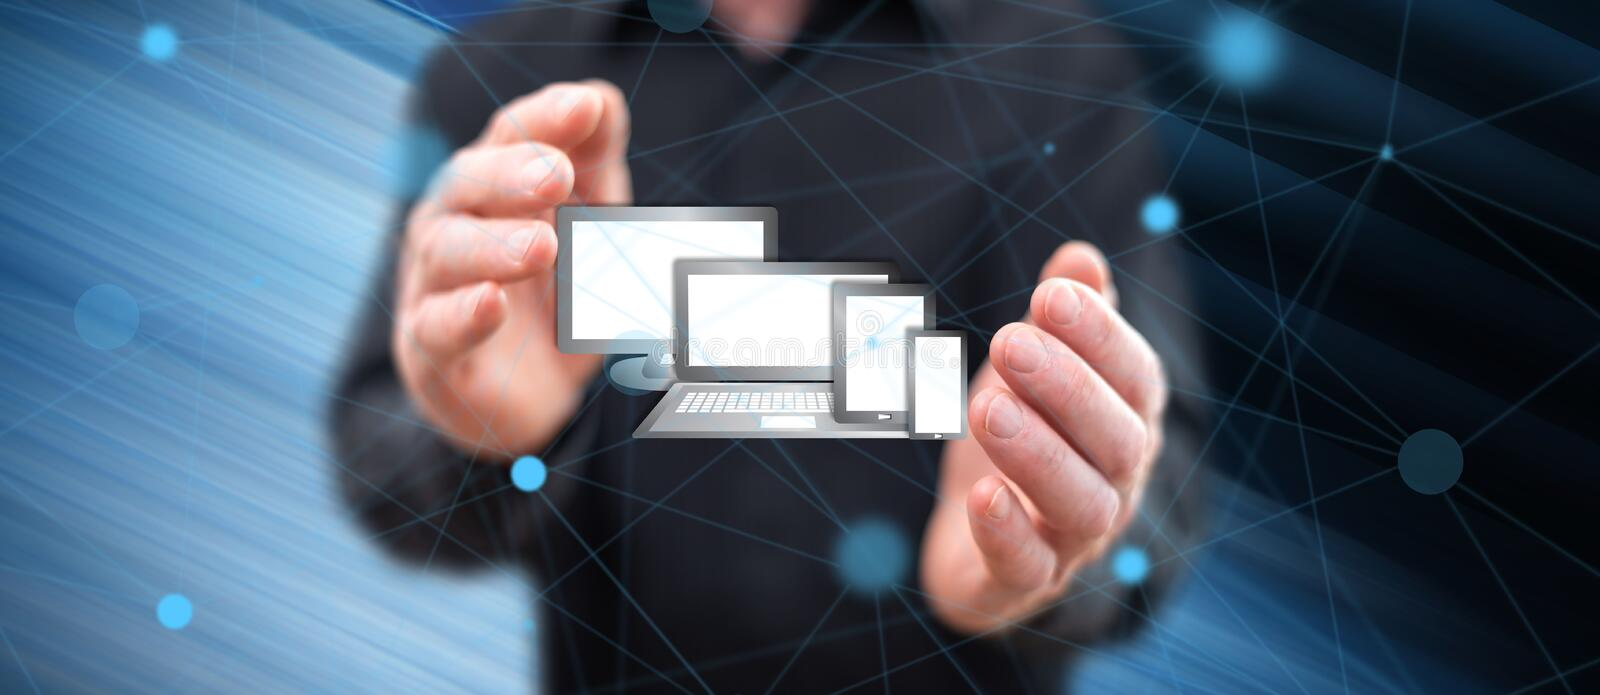 Concept of technology devices royalty free stock photos